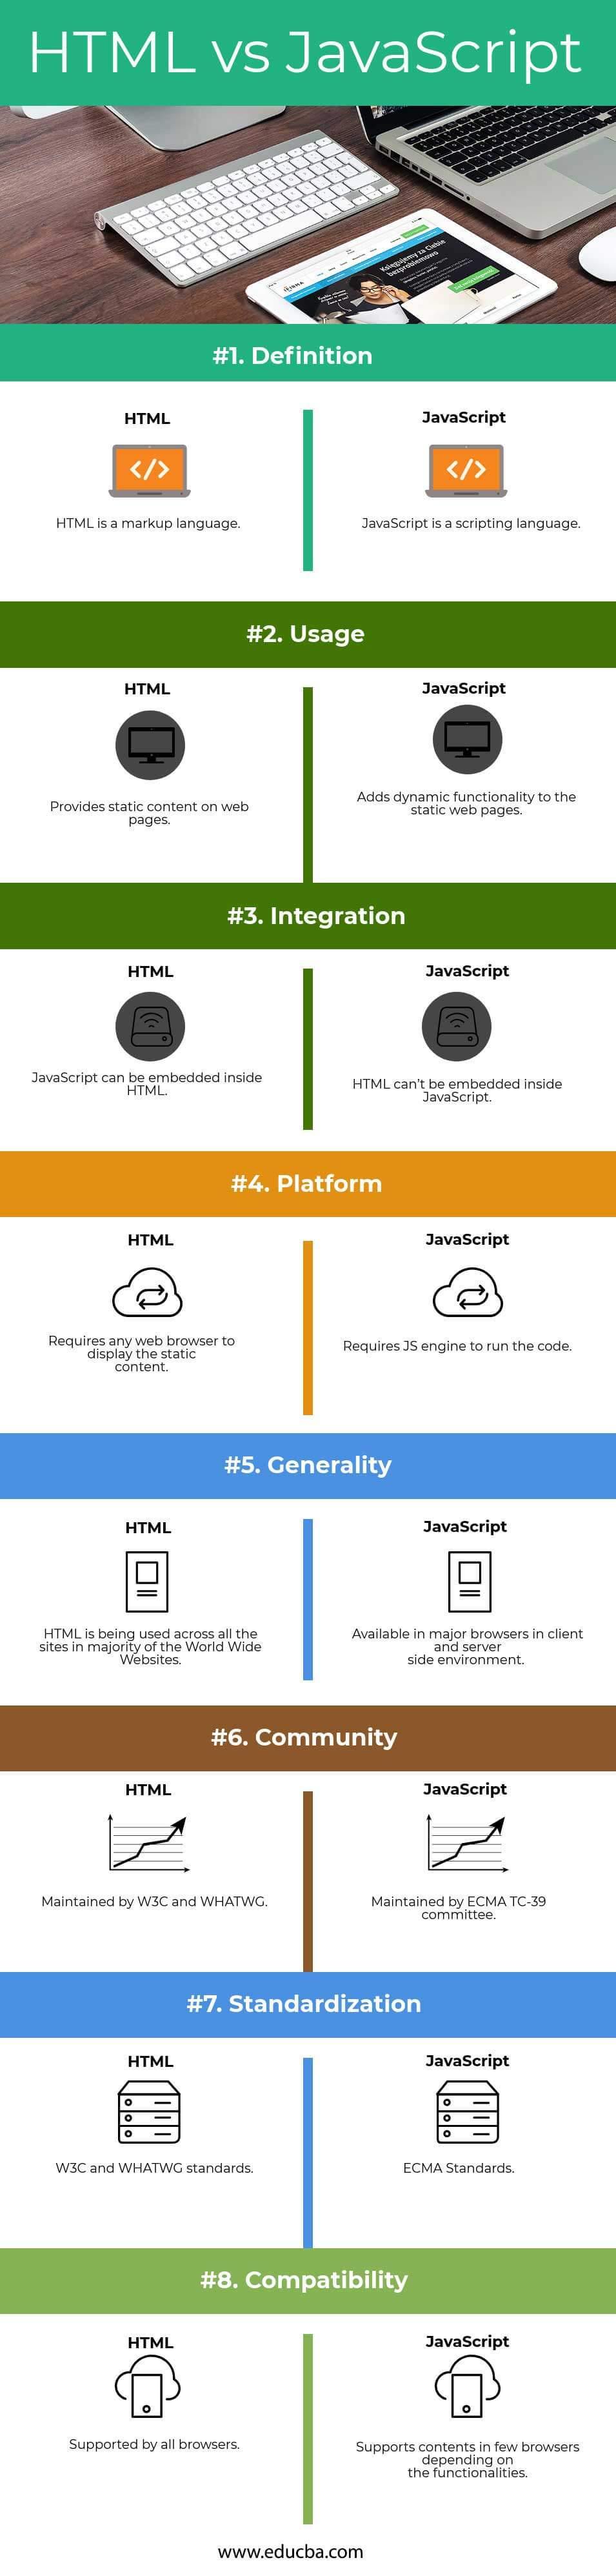 HTML vs JavaScript - 8 Useful Comparison You Need To Know